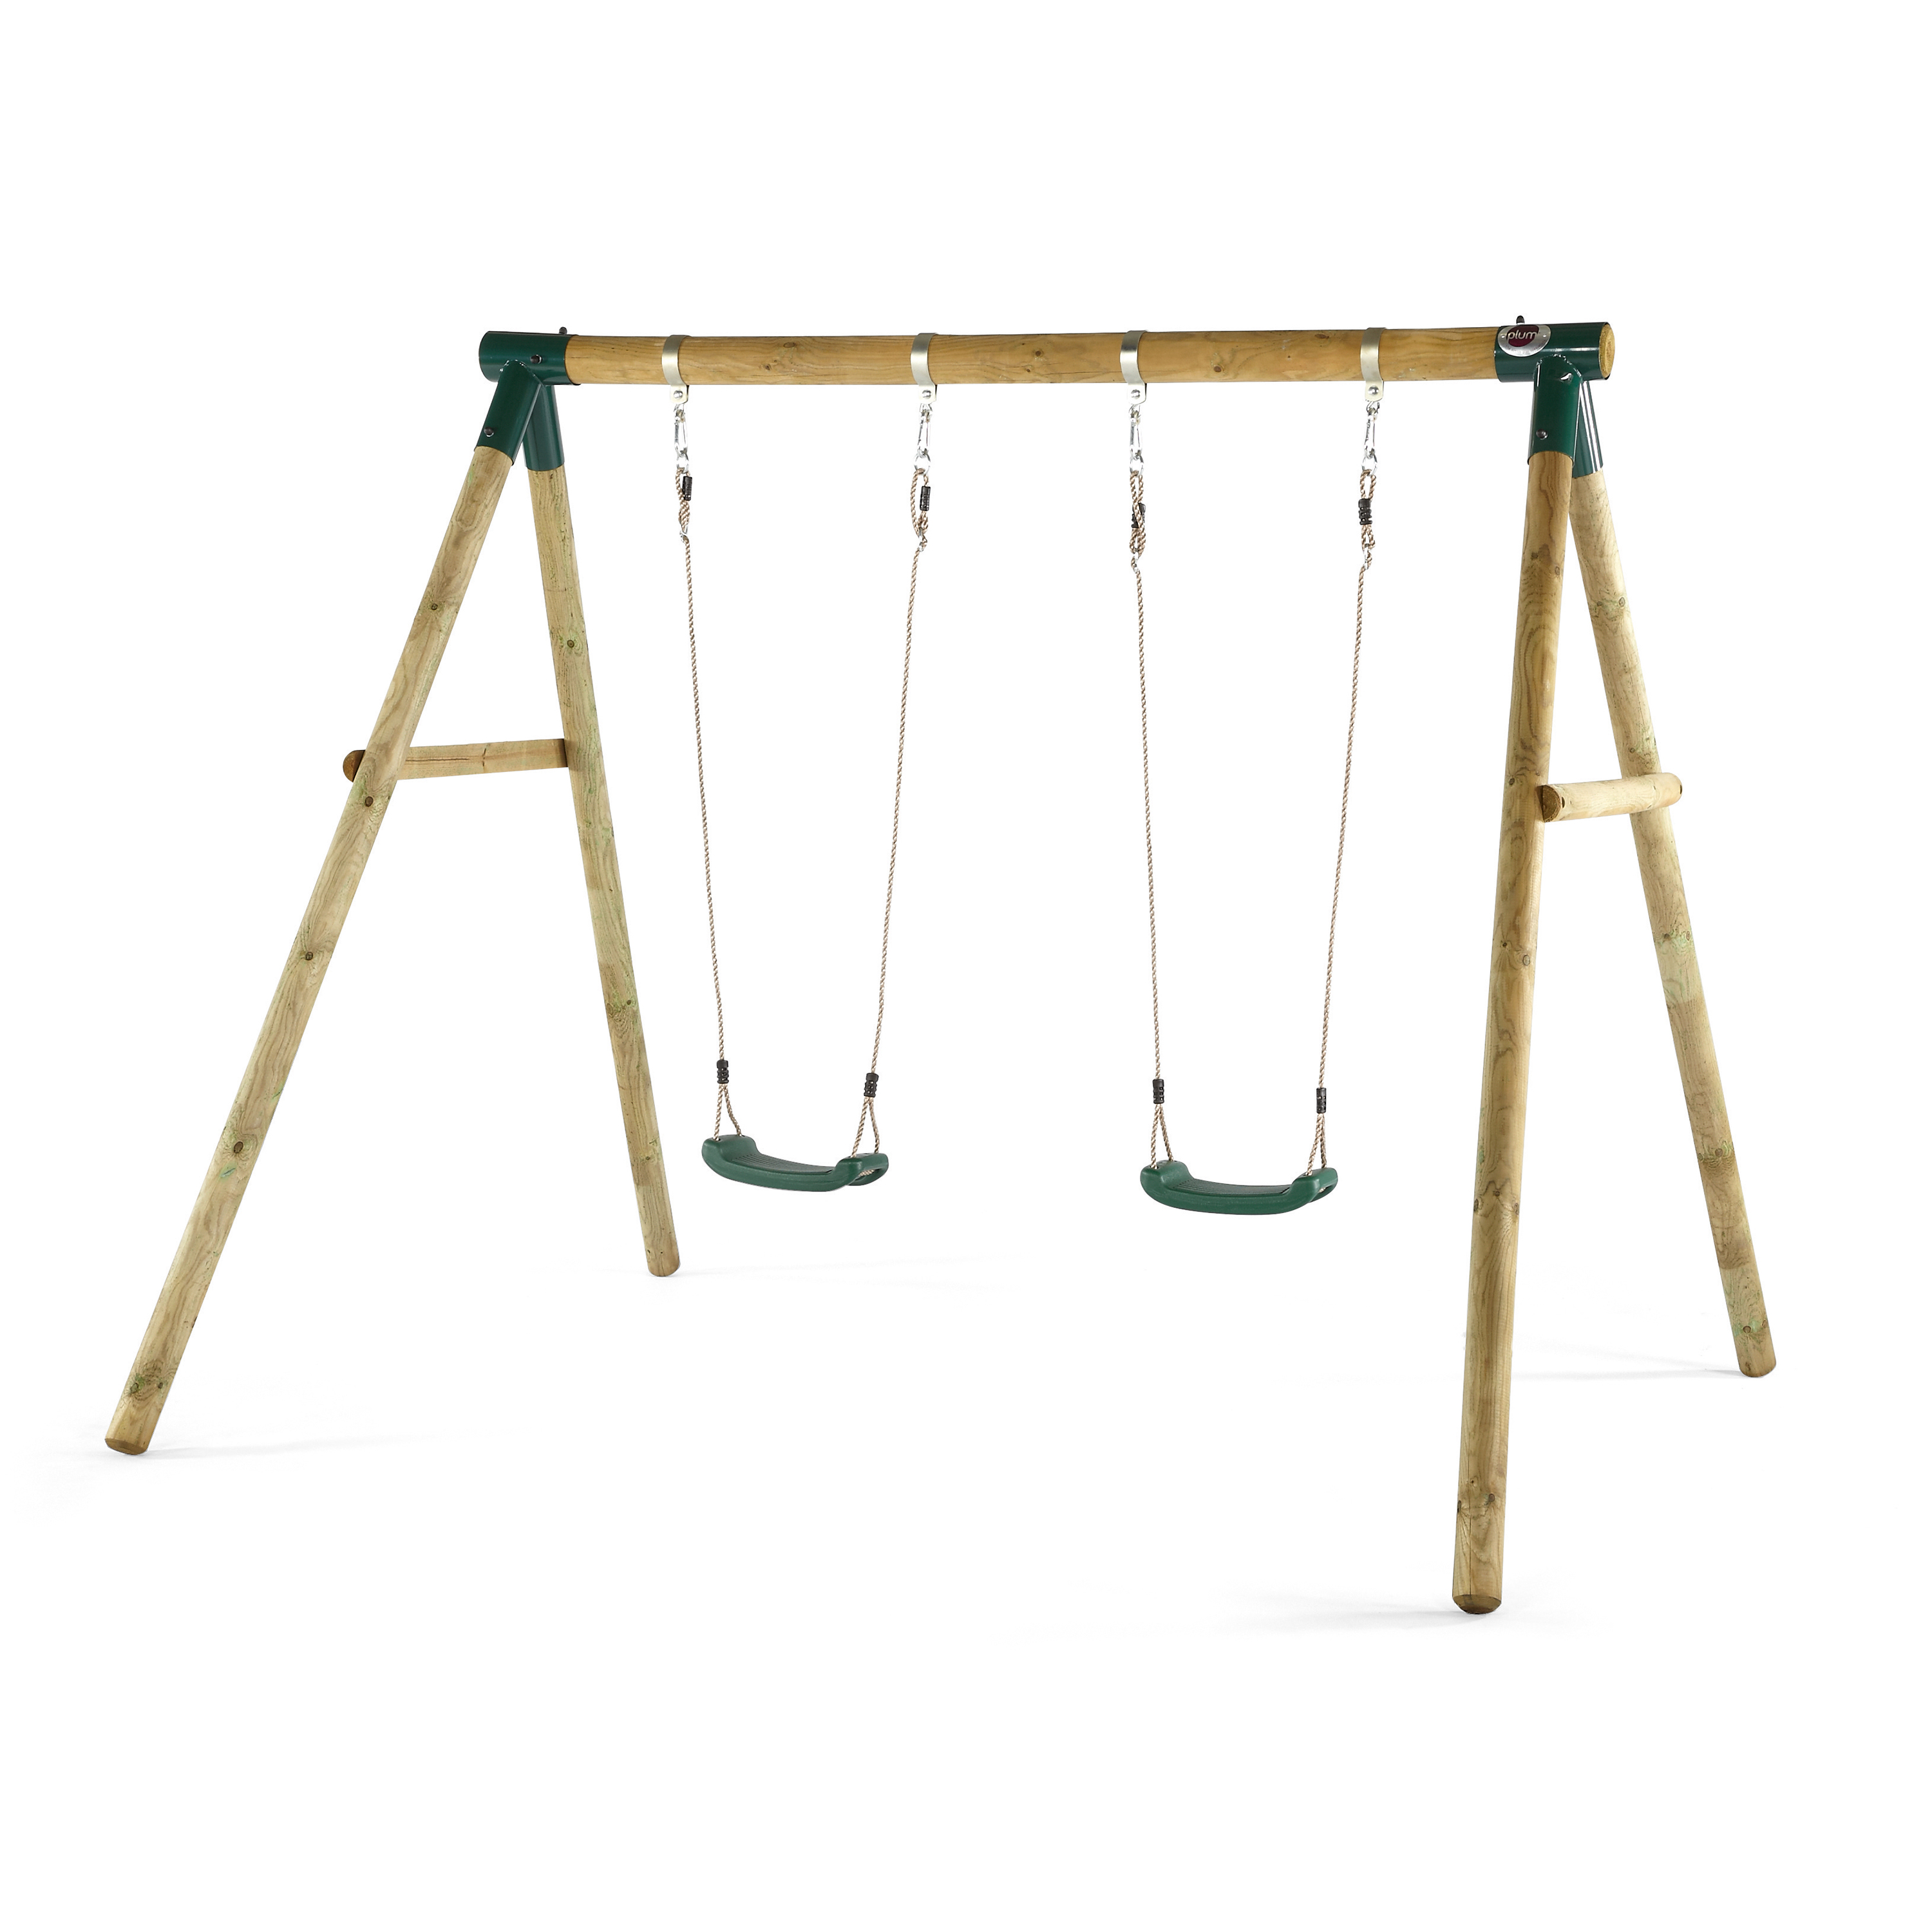 swing ,swing slide sets, baby swings ,teen swings,heavy duty swing set